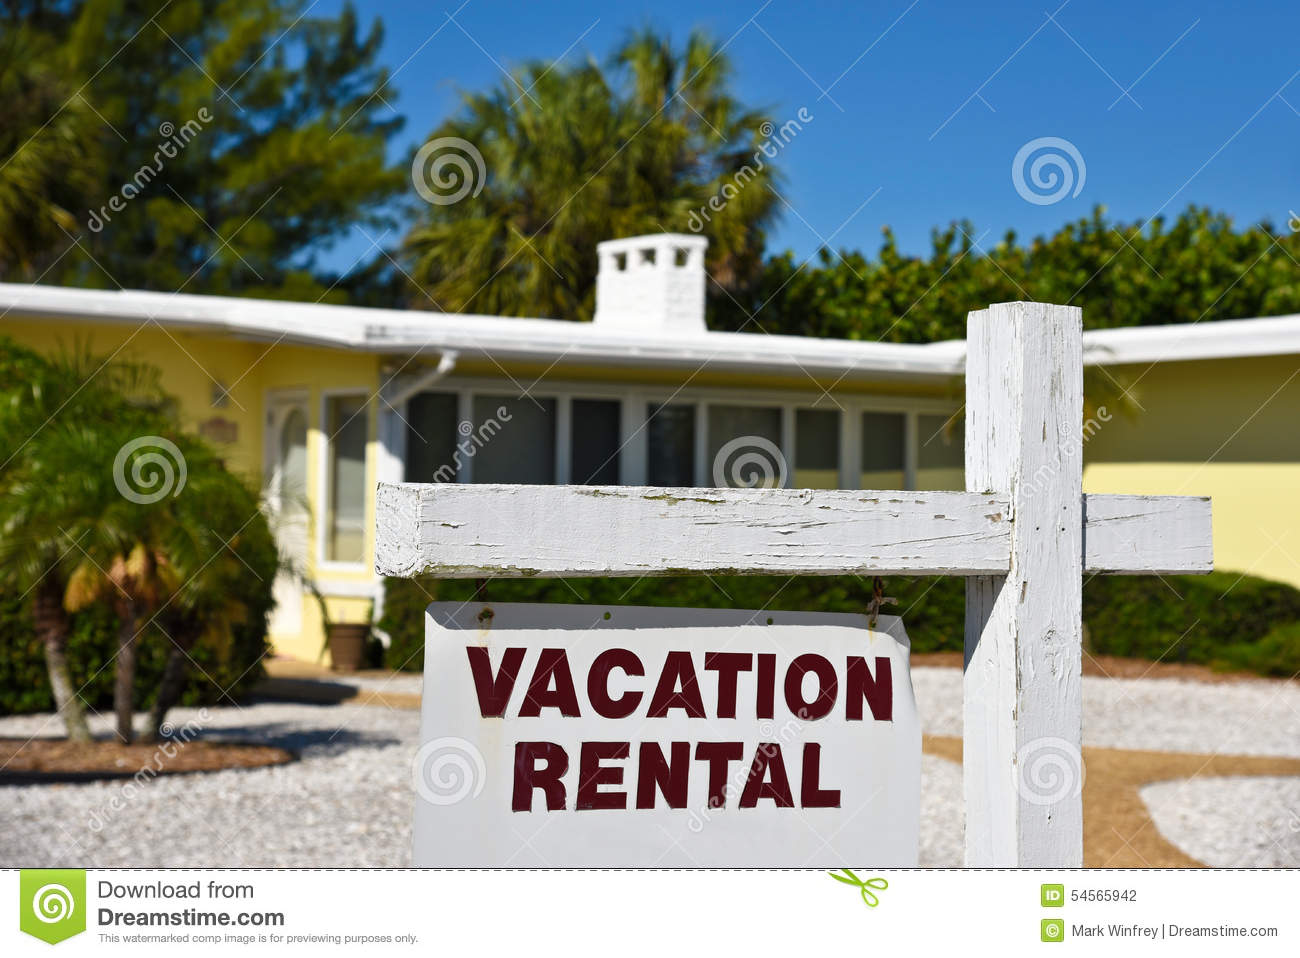 Vacation Rental House